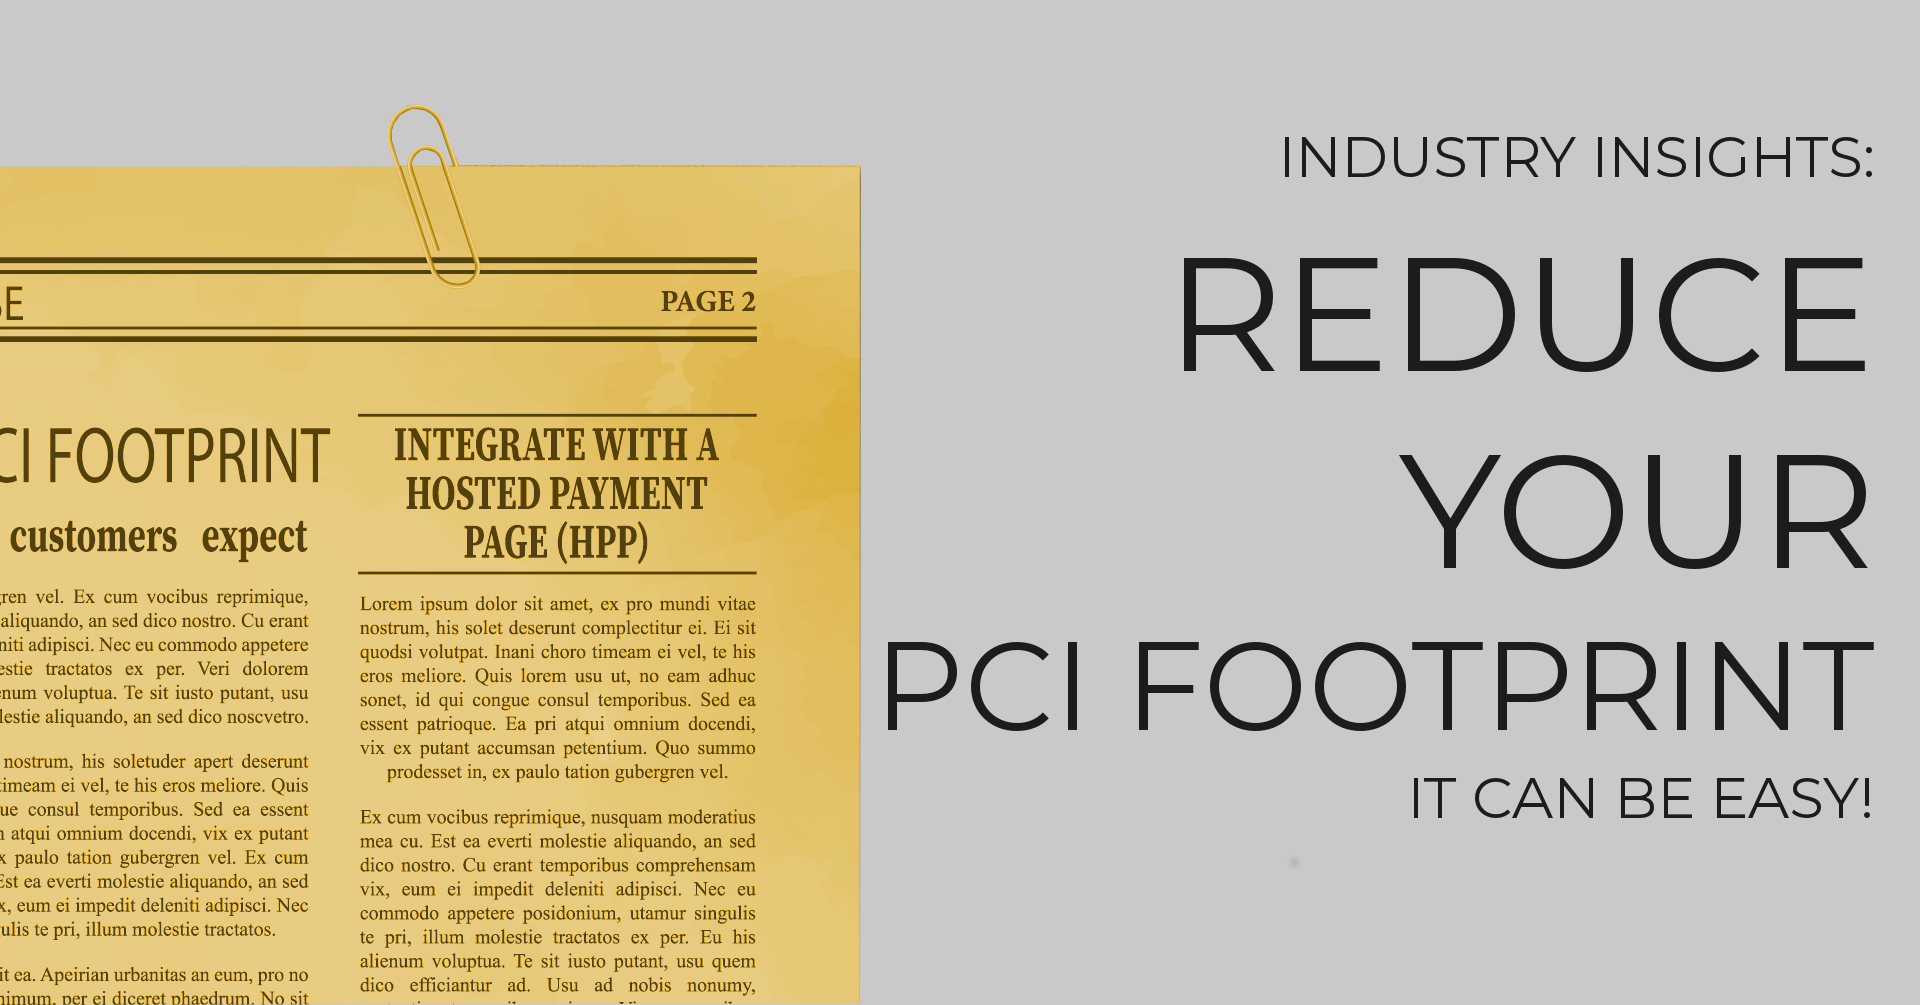 Reduce your PCI footprints